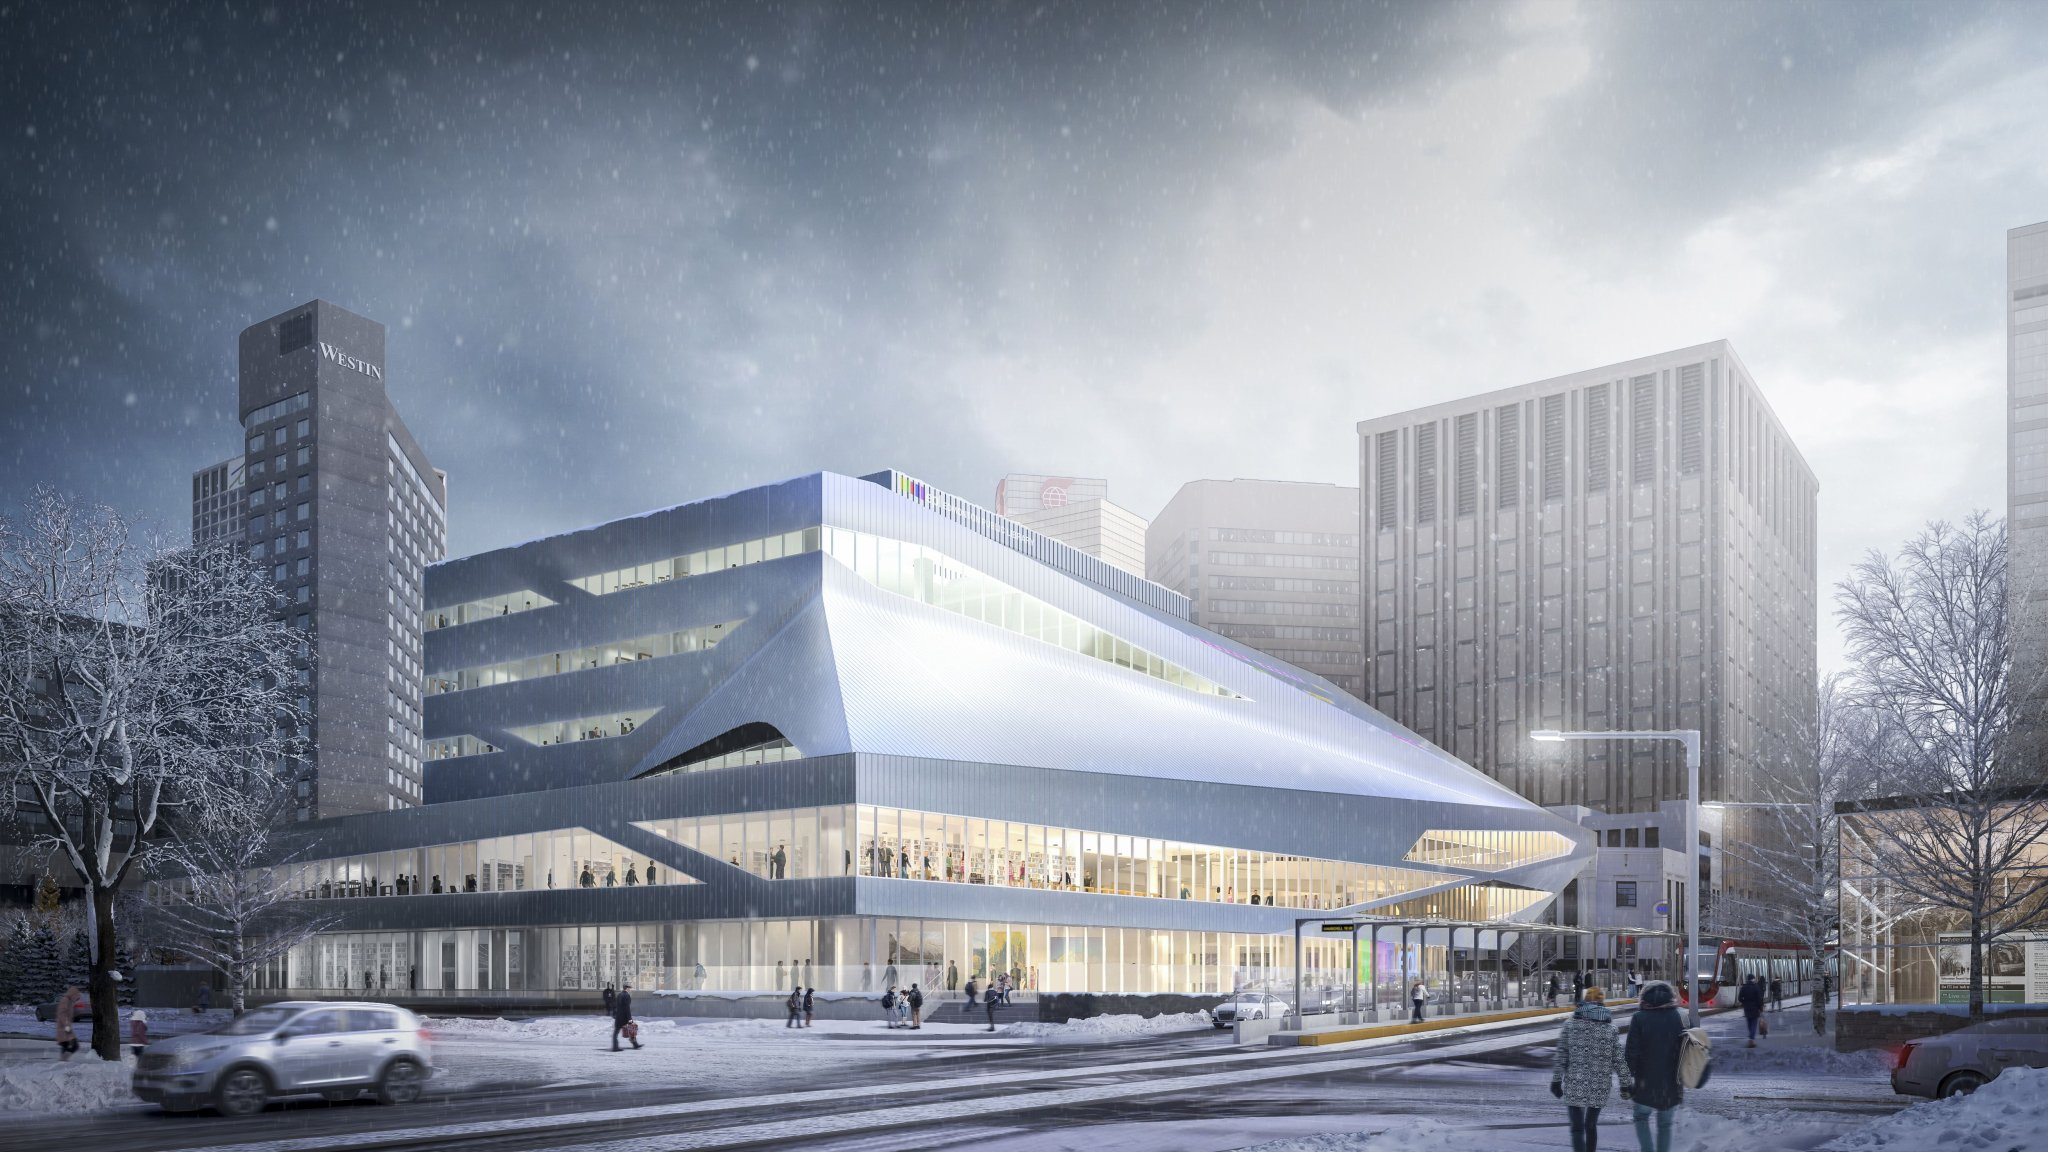 Depictions of Edmonton's new Stanley Milner Library renovation.